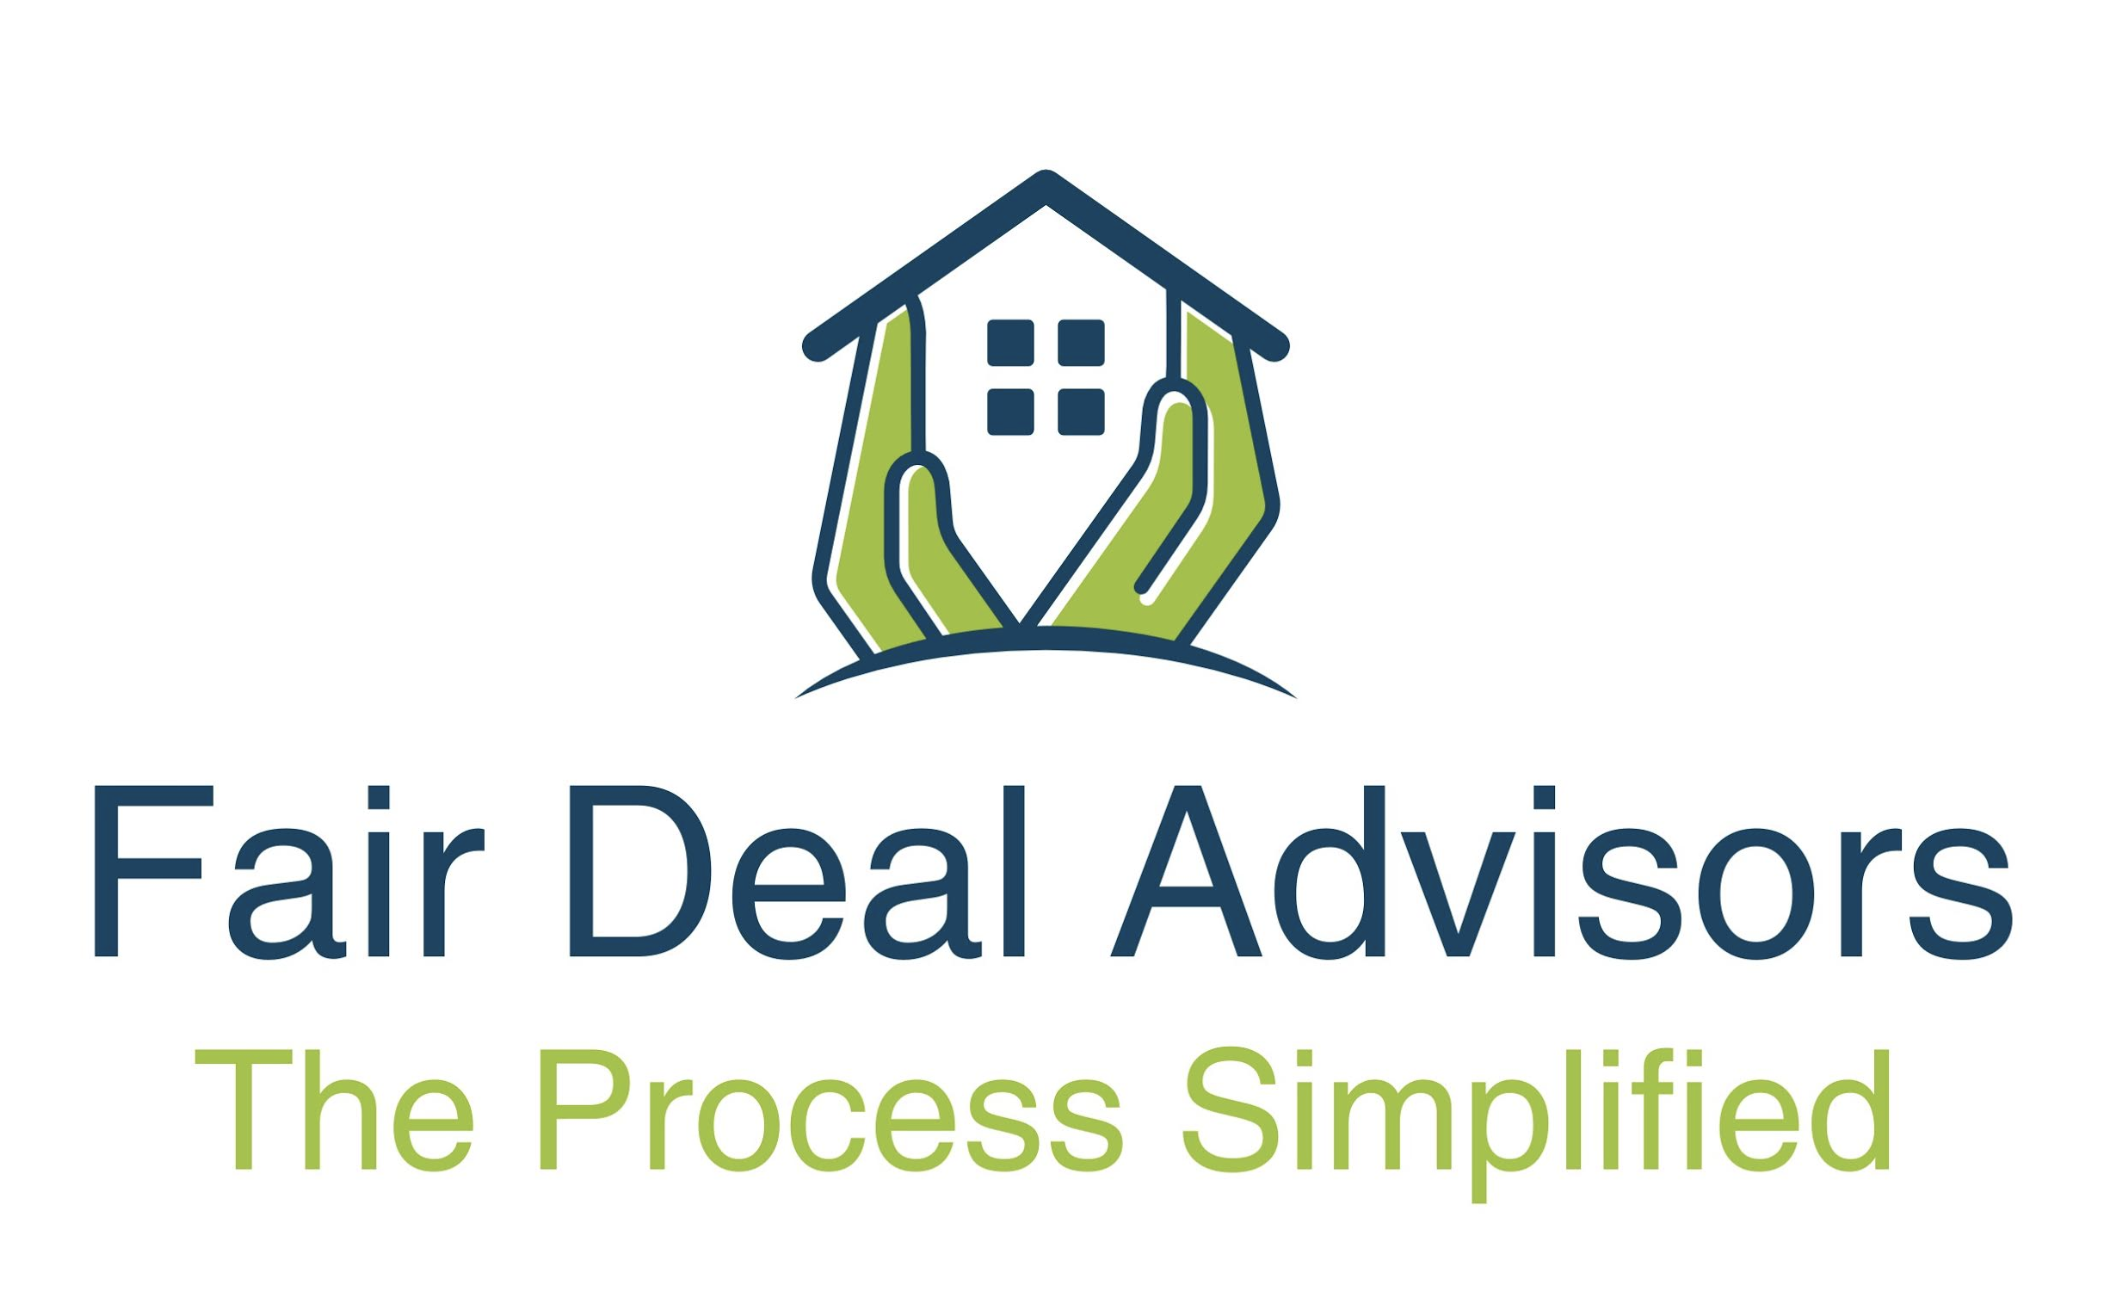 Fair Deal Advisors